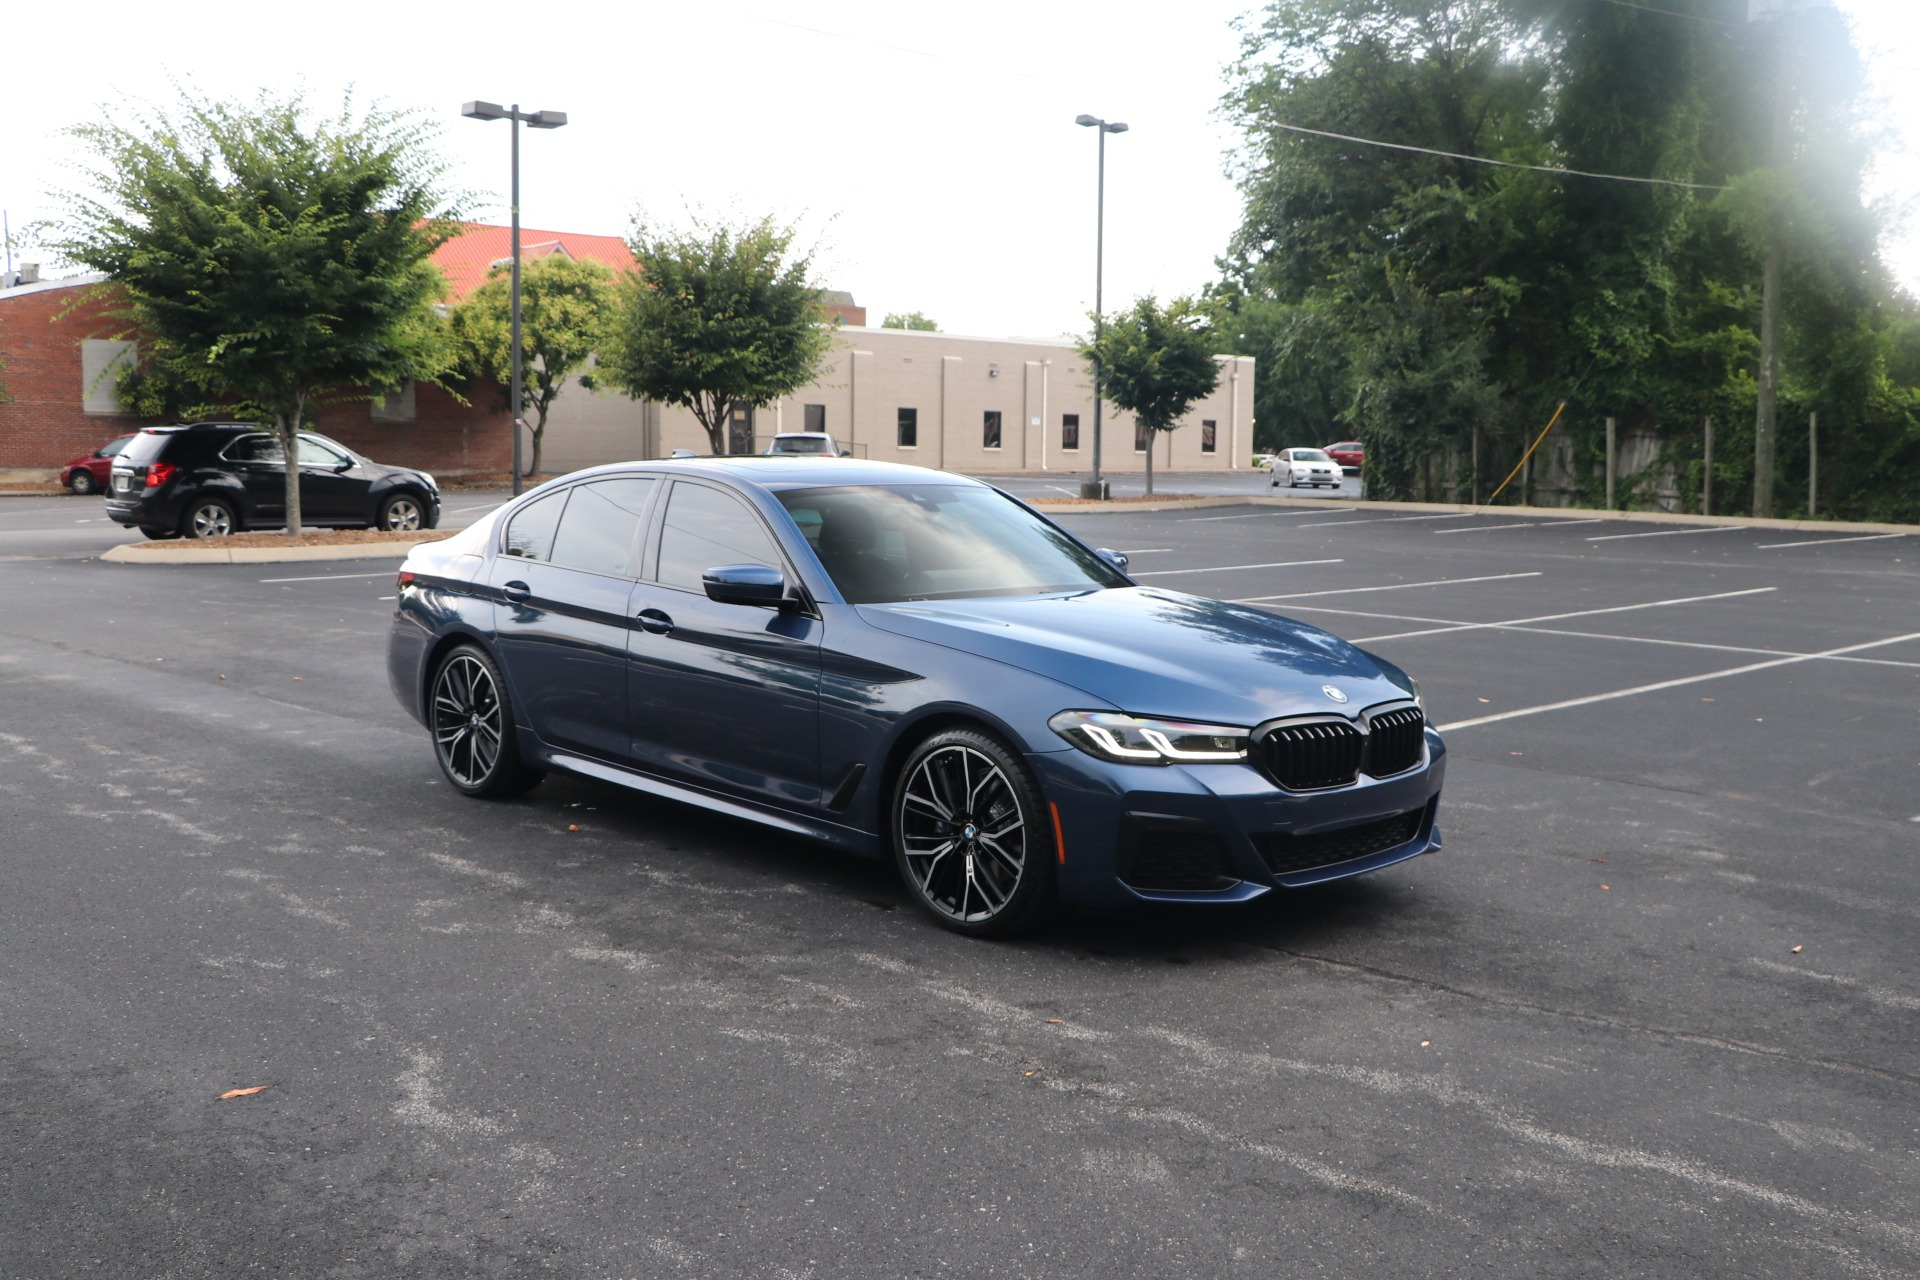 Used 2021 BMW 530i PREMIUM M SPORT PACKAGE W/NAV for sale $58,950 at Auto Collection in Murfreesboro TN 37130 1